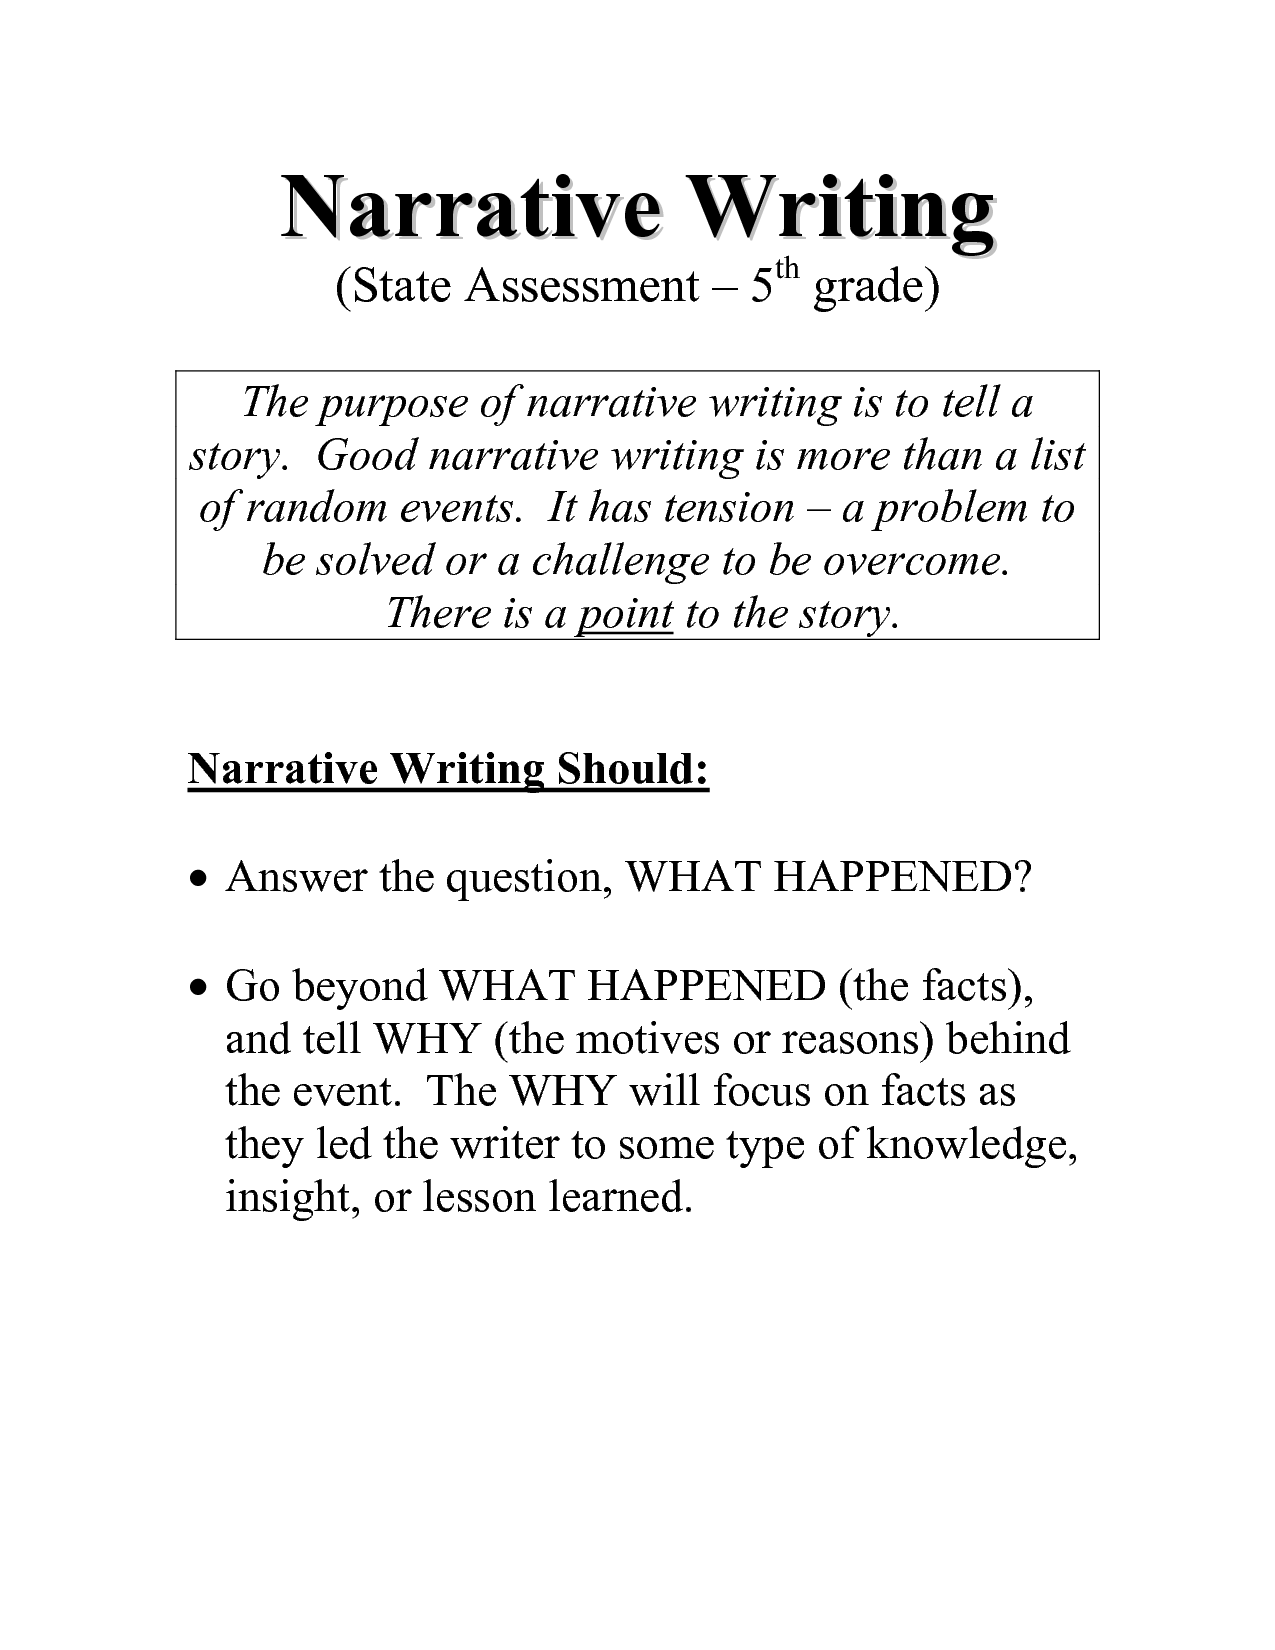 Narrative essay prompts 5th grade